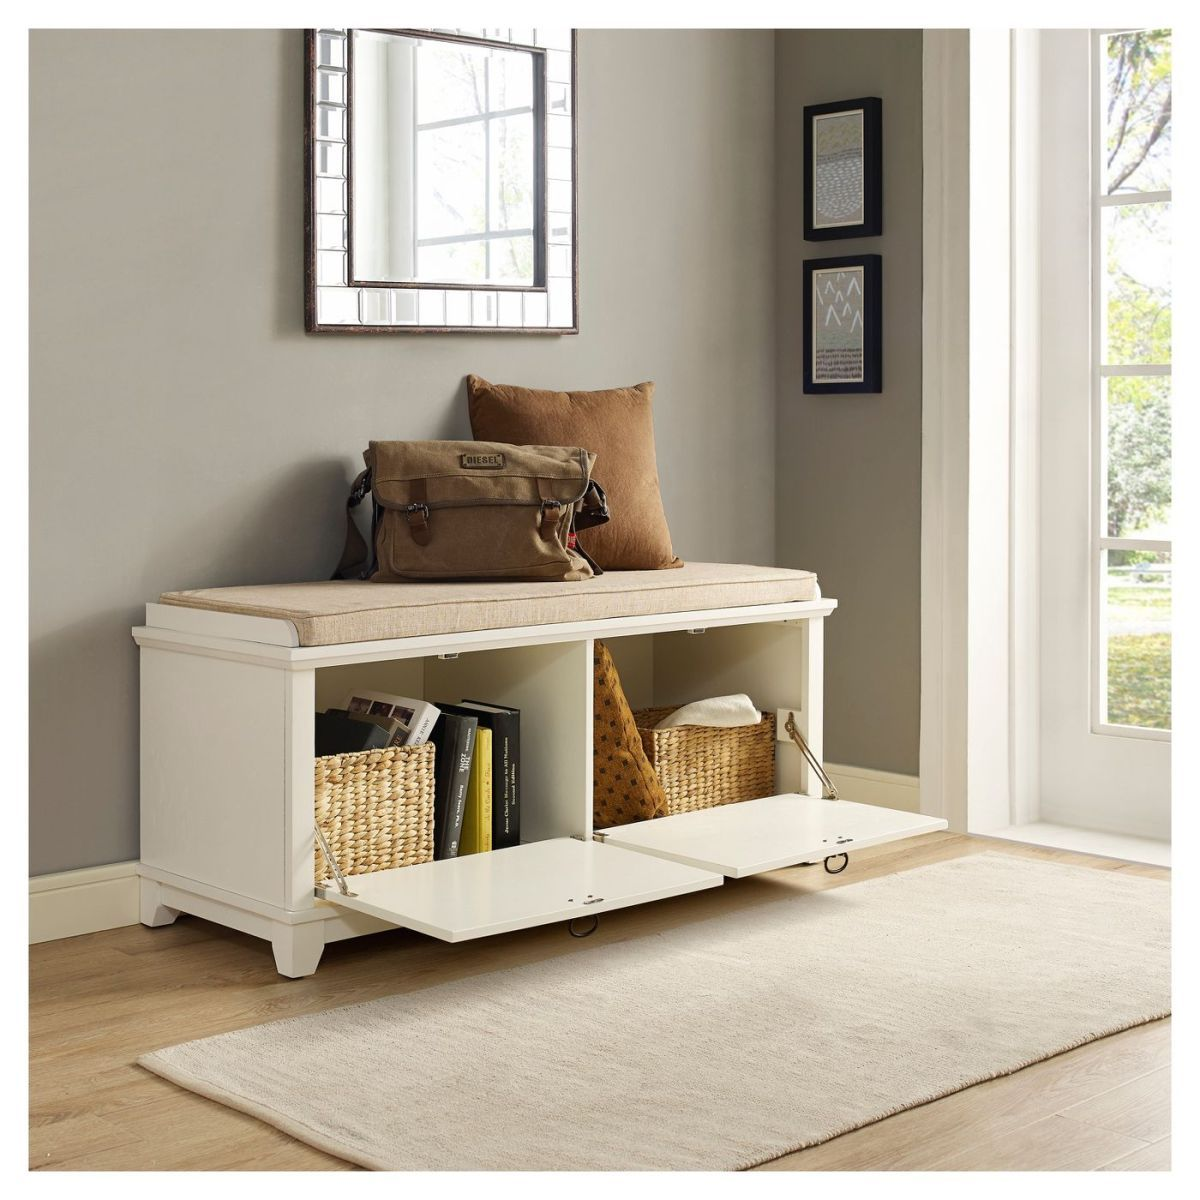 Get a white storage bench with drawers (12 stylish options